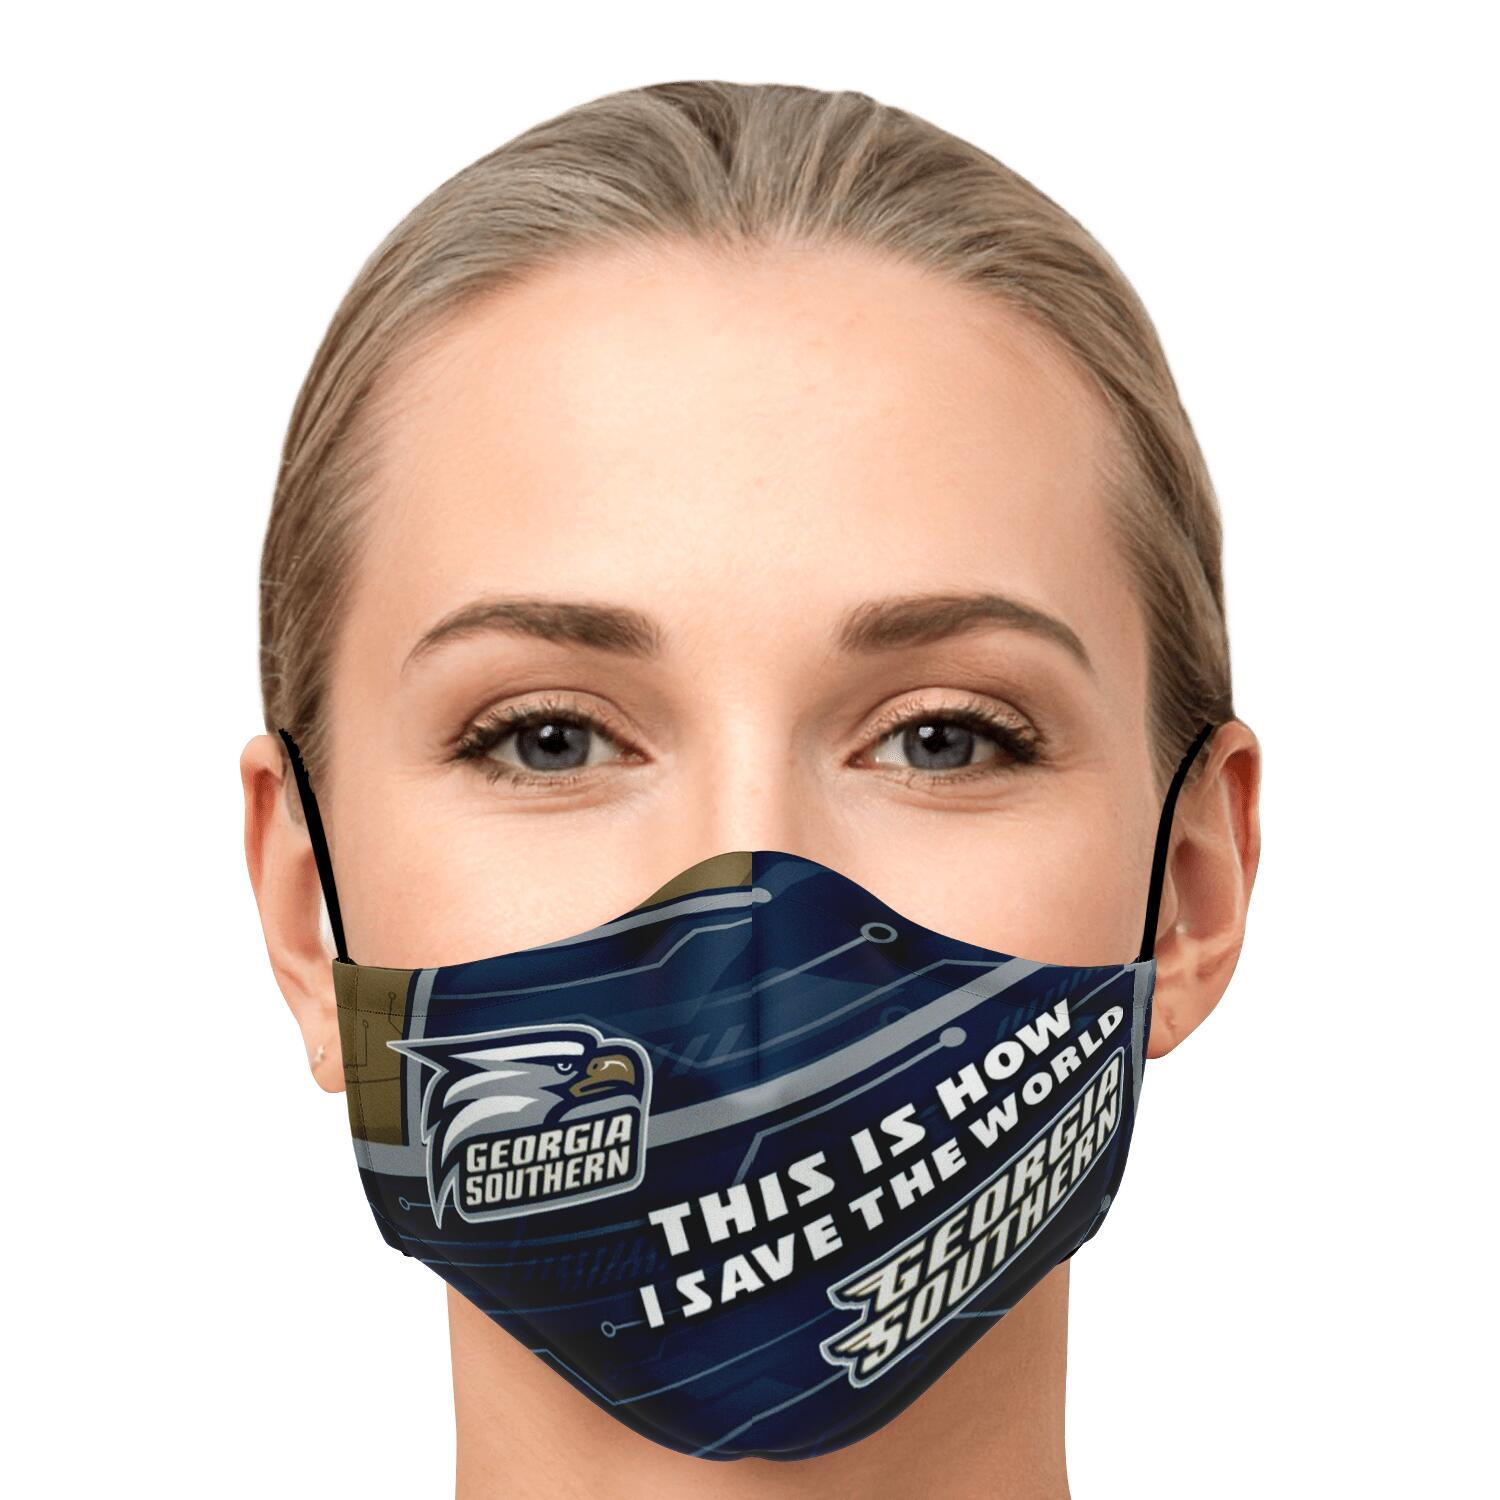 This Is How I Save The World Georgia Southern Eagles Face Masks 1